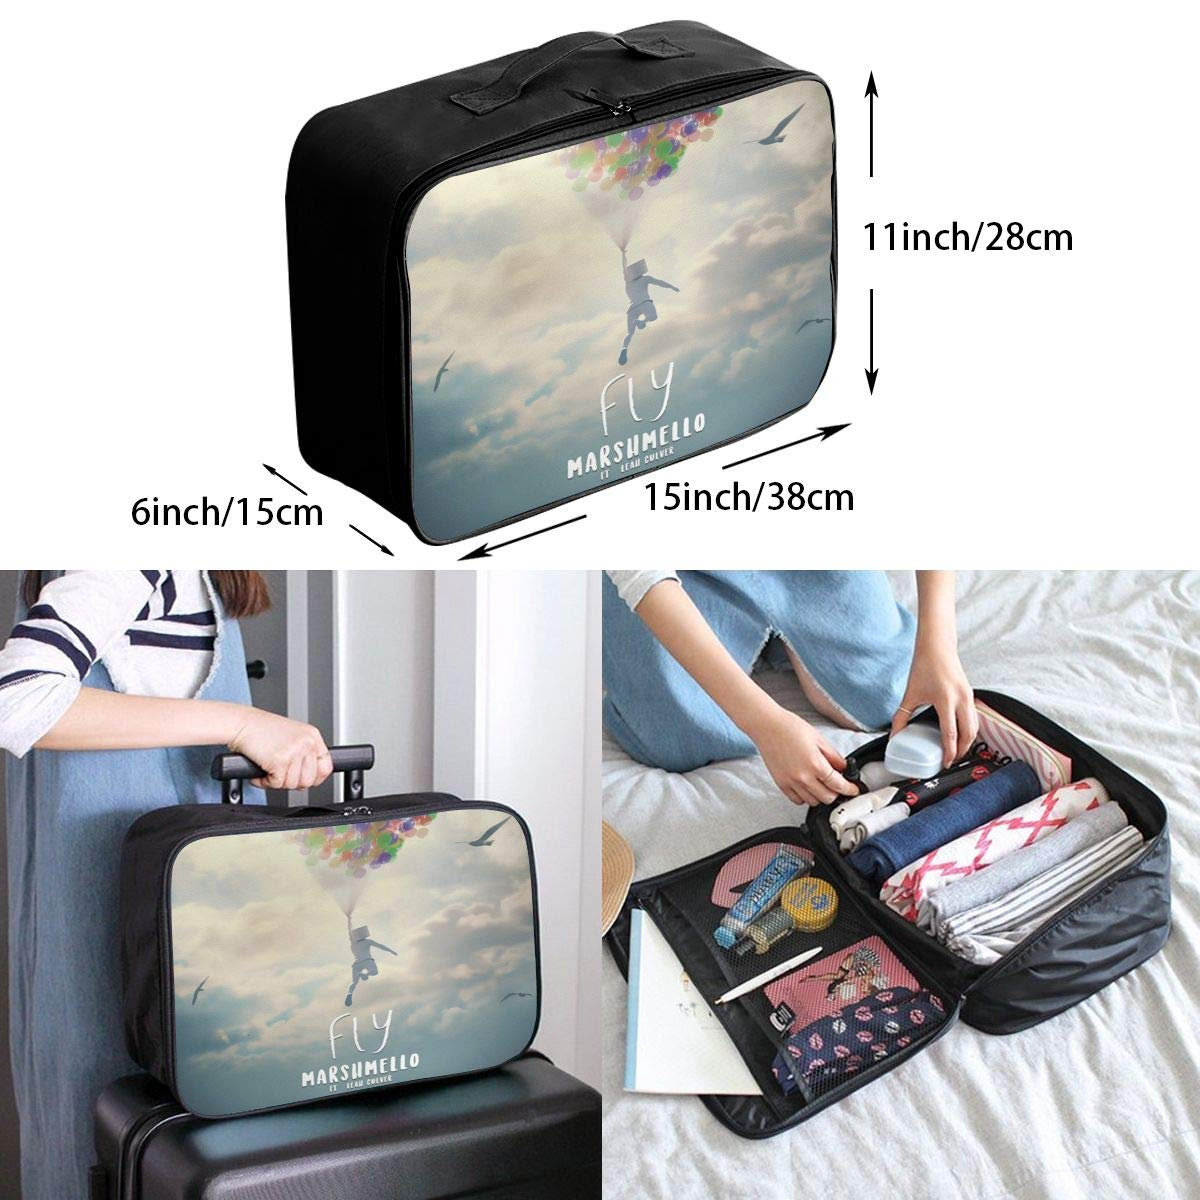 M/_arshm/_ello Large Capacity Portable Luggage Bag Travel Lightweight Waterproof Storage Carry Luggage Duffel Tote Bag